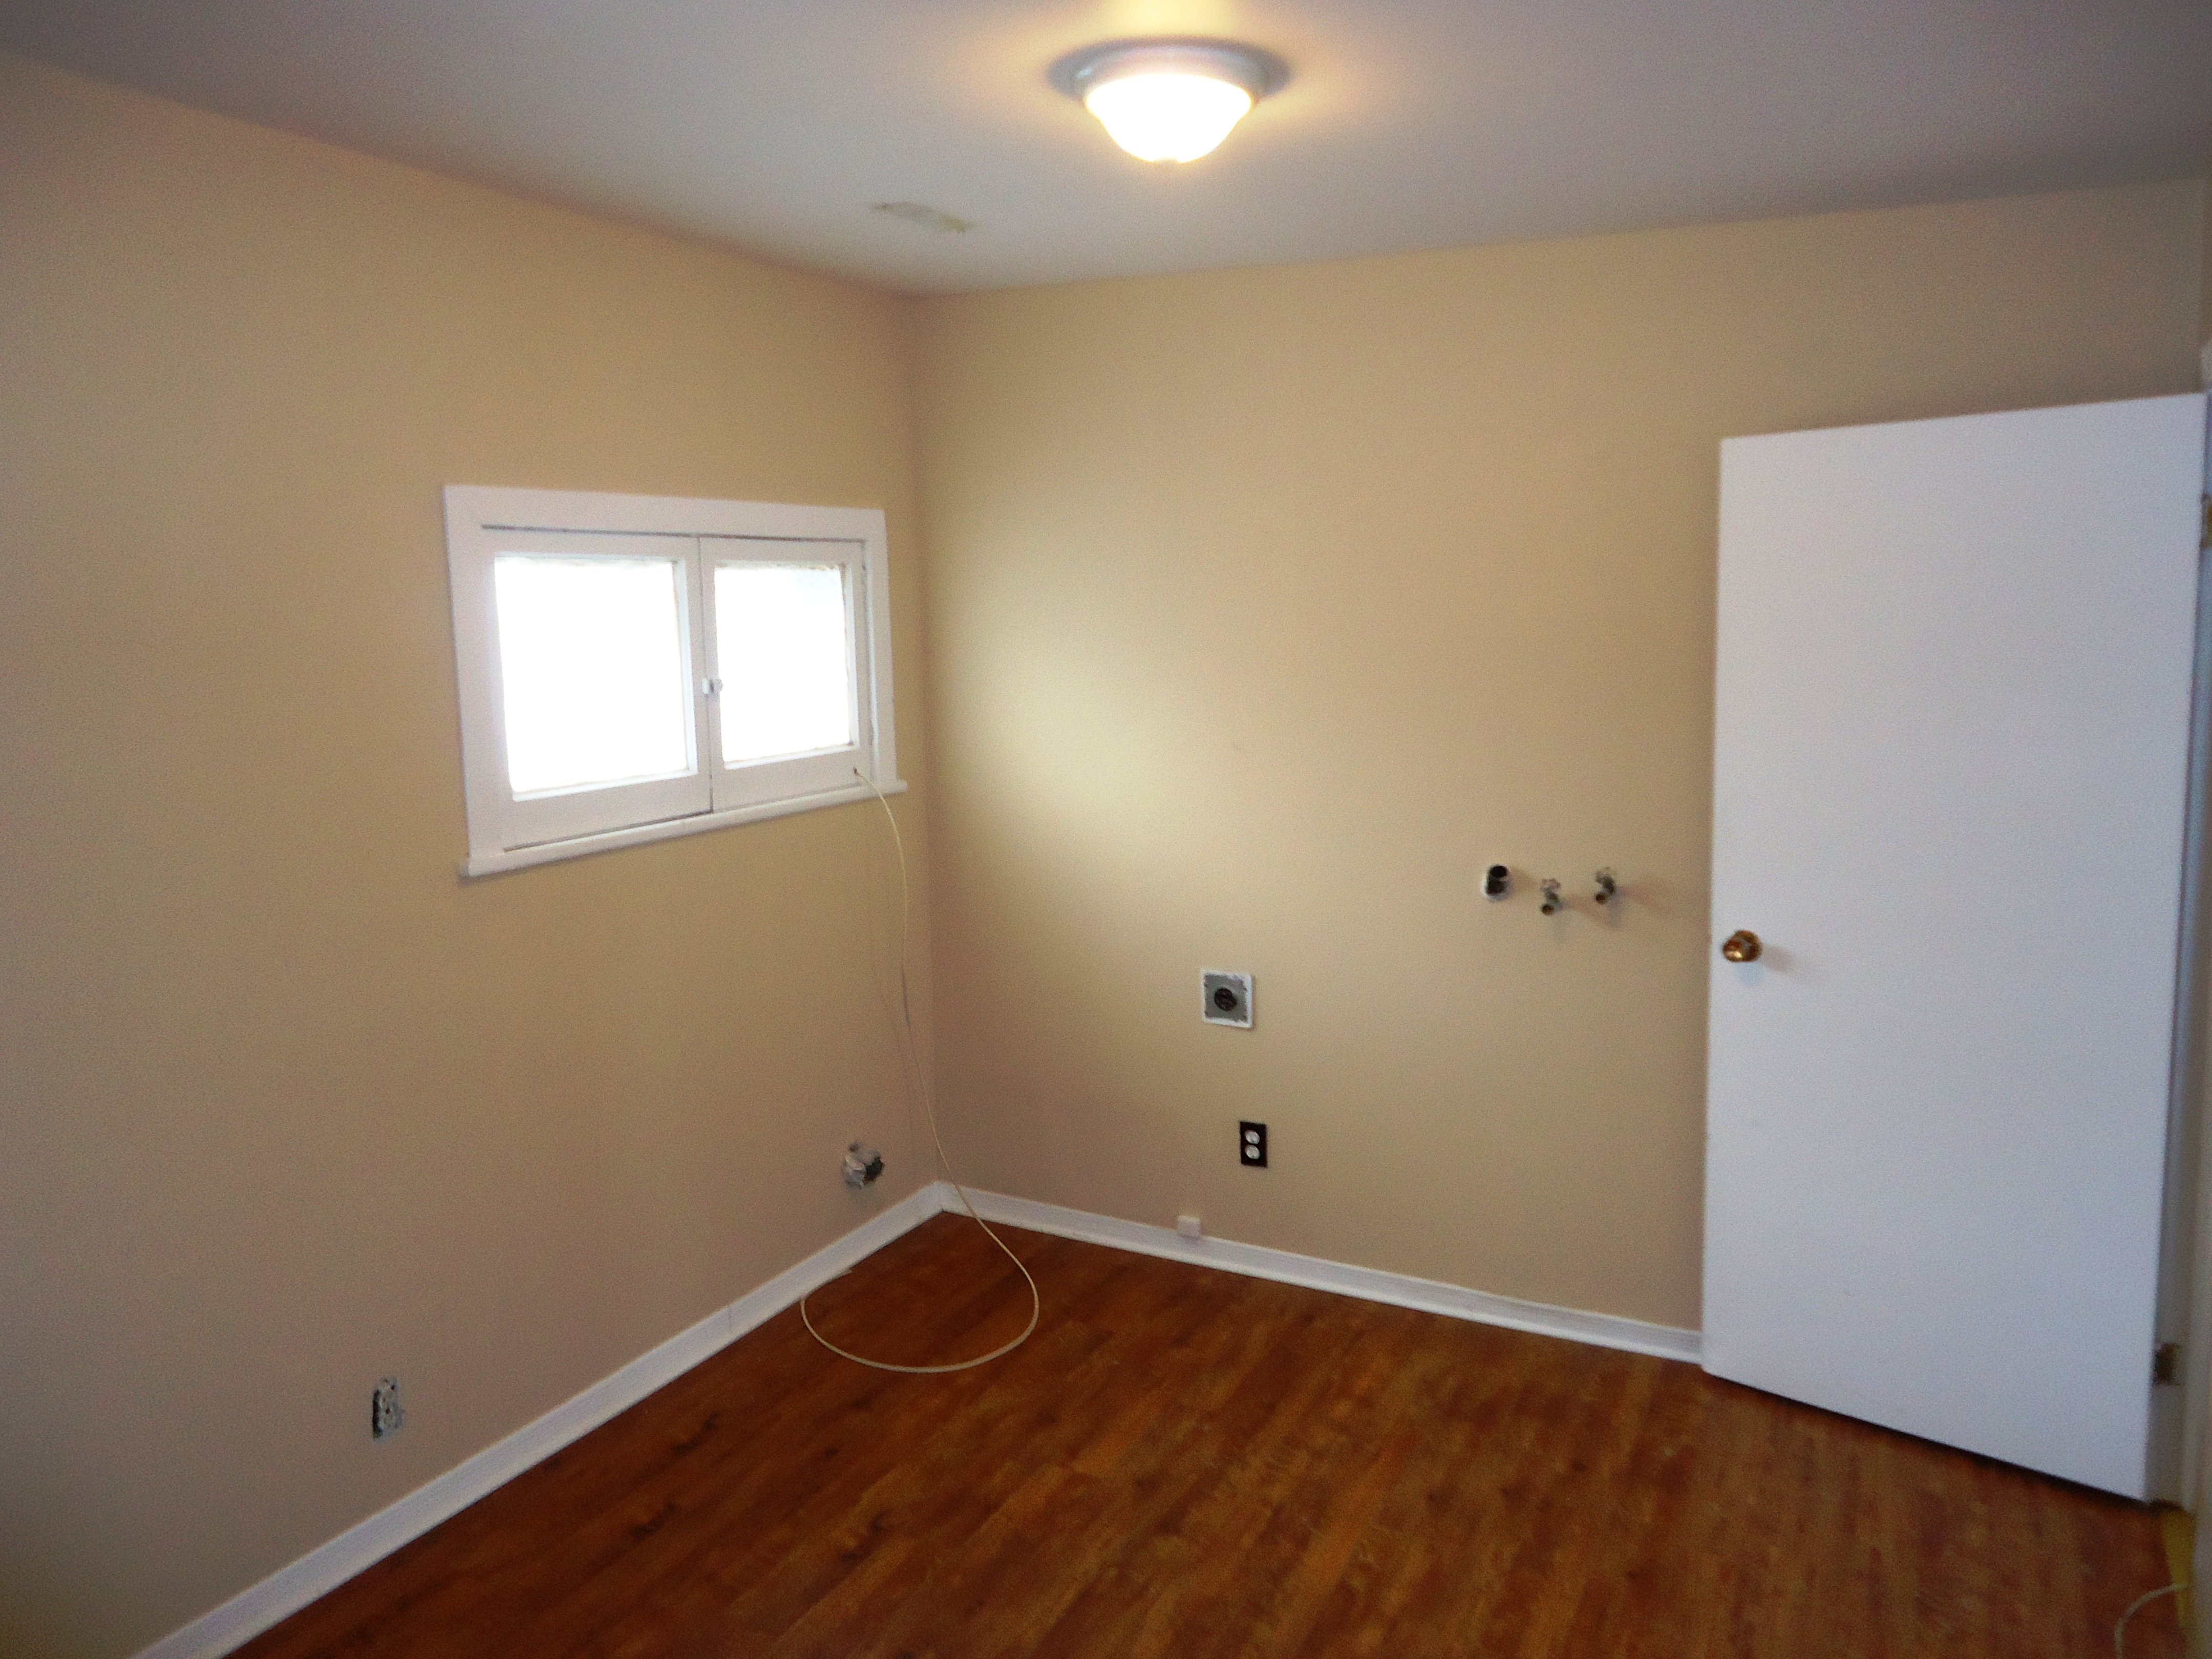 Bedroom Apartments For Rent Cornwall Ontario